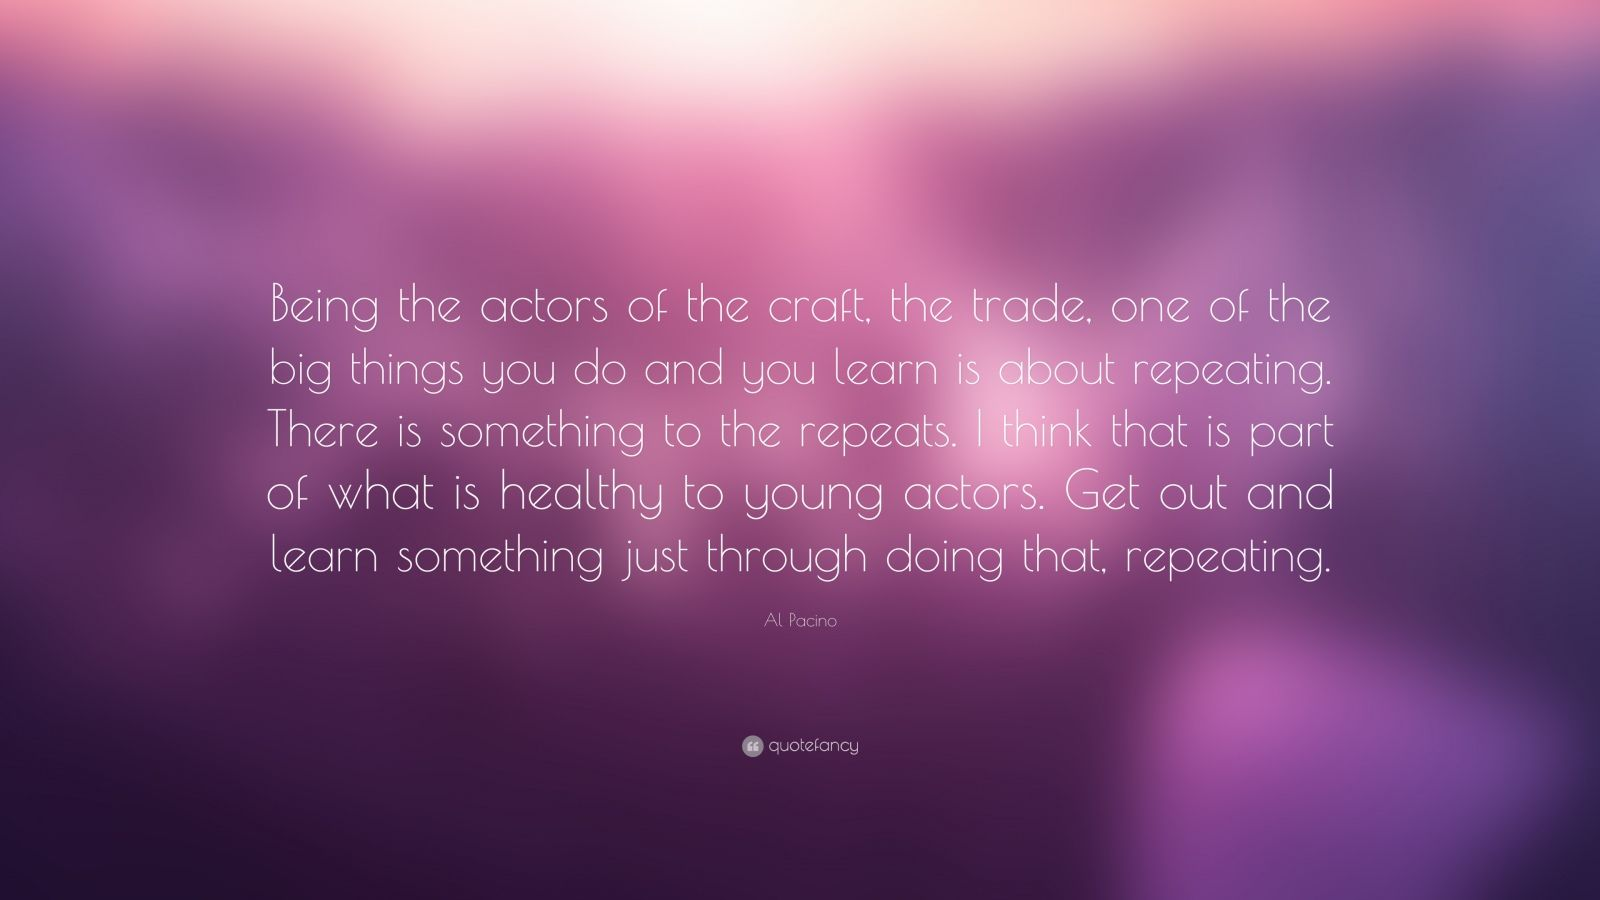 """Al Pacino Quote: """"Being the actors of the craft, the trade, one of the big things you do and you learn is about repeating. There is something to the repeats. I think that is part of what is healthy to young actors. Get out and learn something just through doing that, repeating."""""""